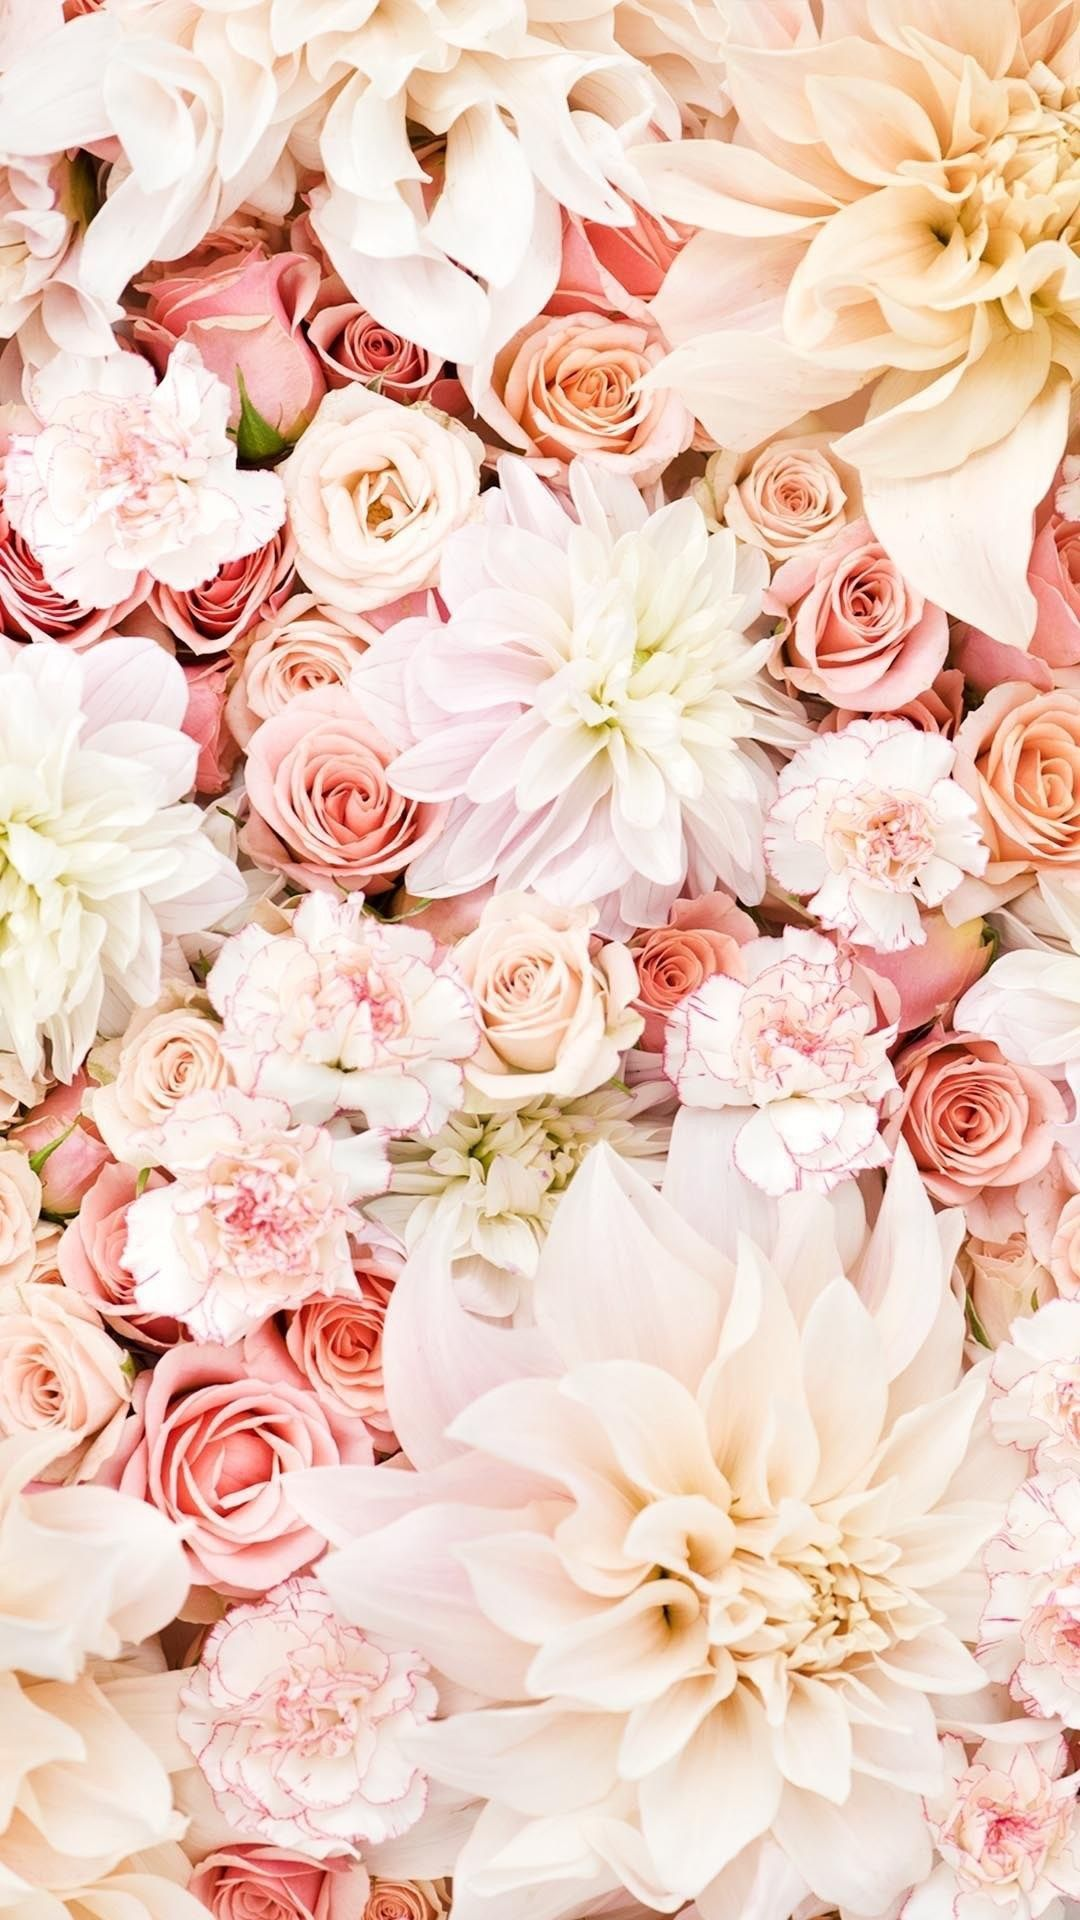 Welcome to Royalty part 2 – Pearls and Pink Peonies